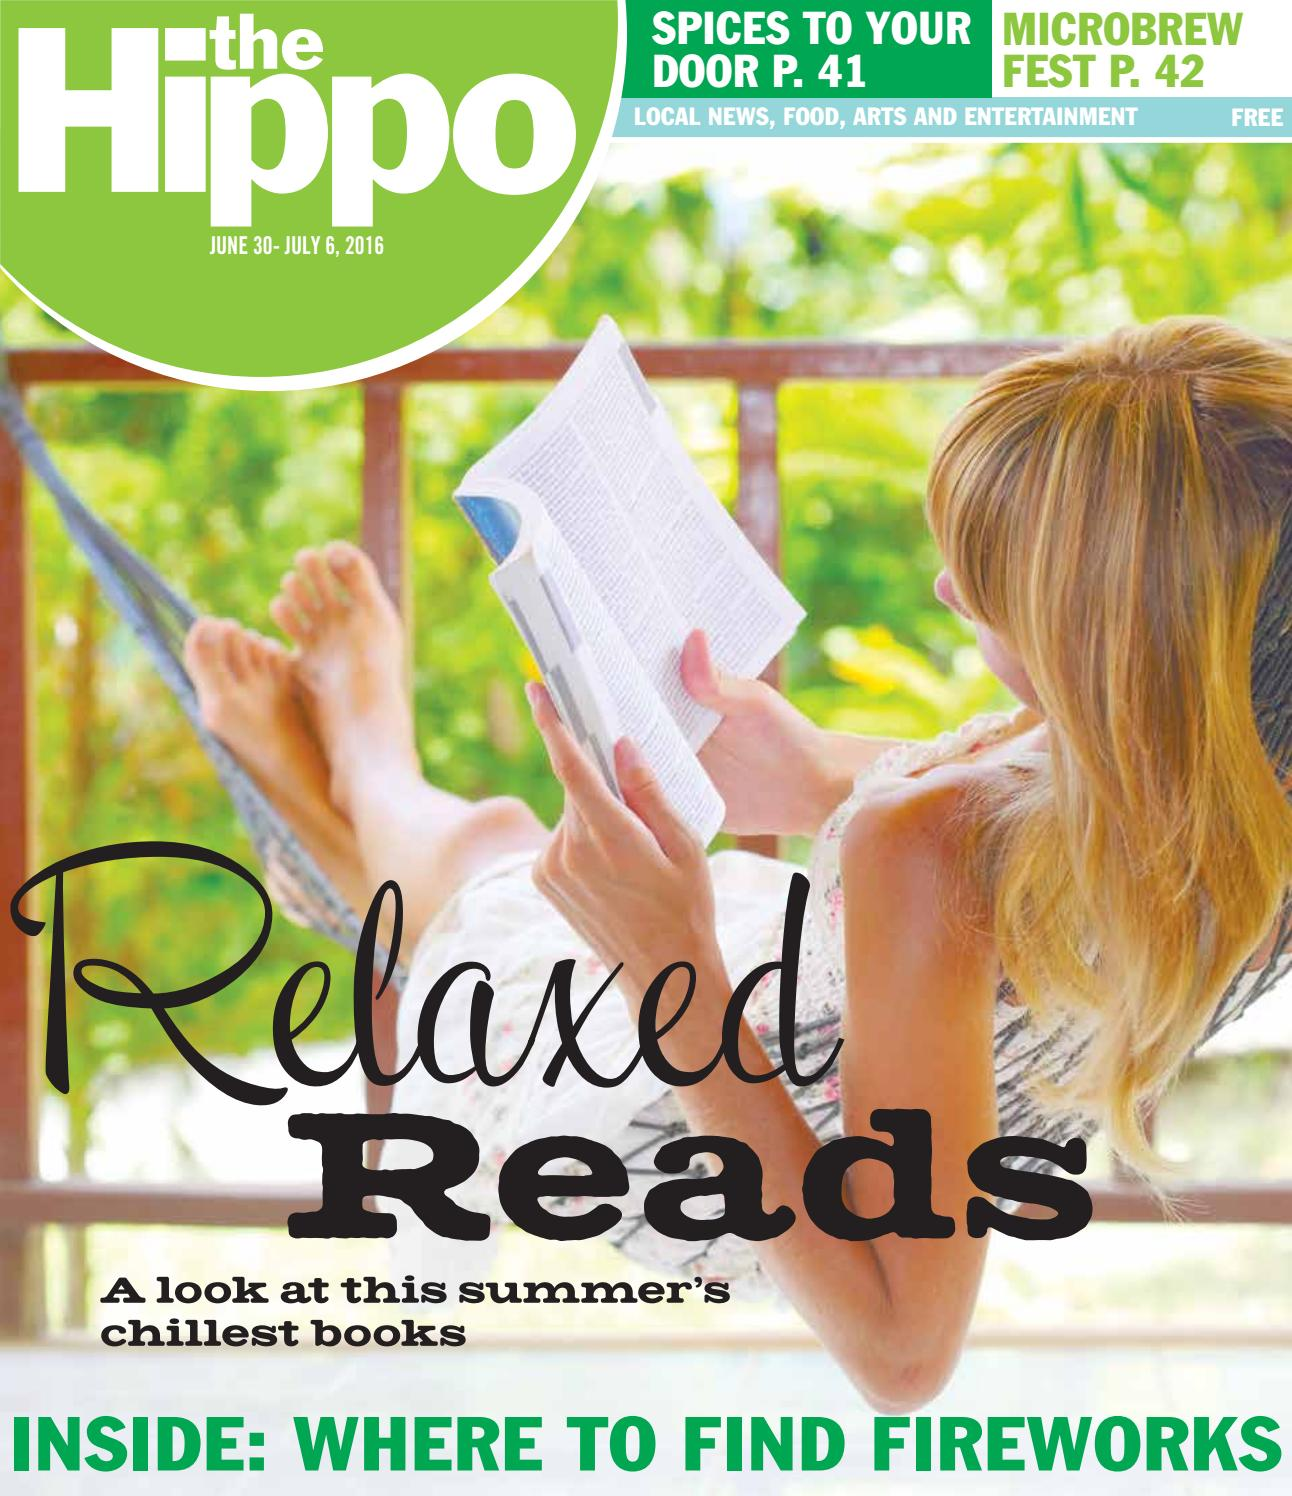 Hippo 6/30/16 by The Hippo - issuu